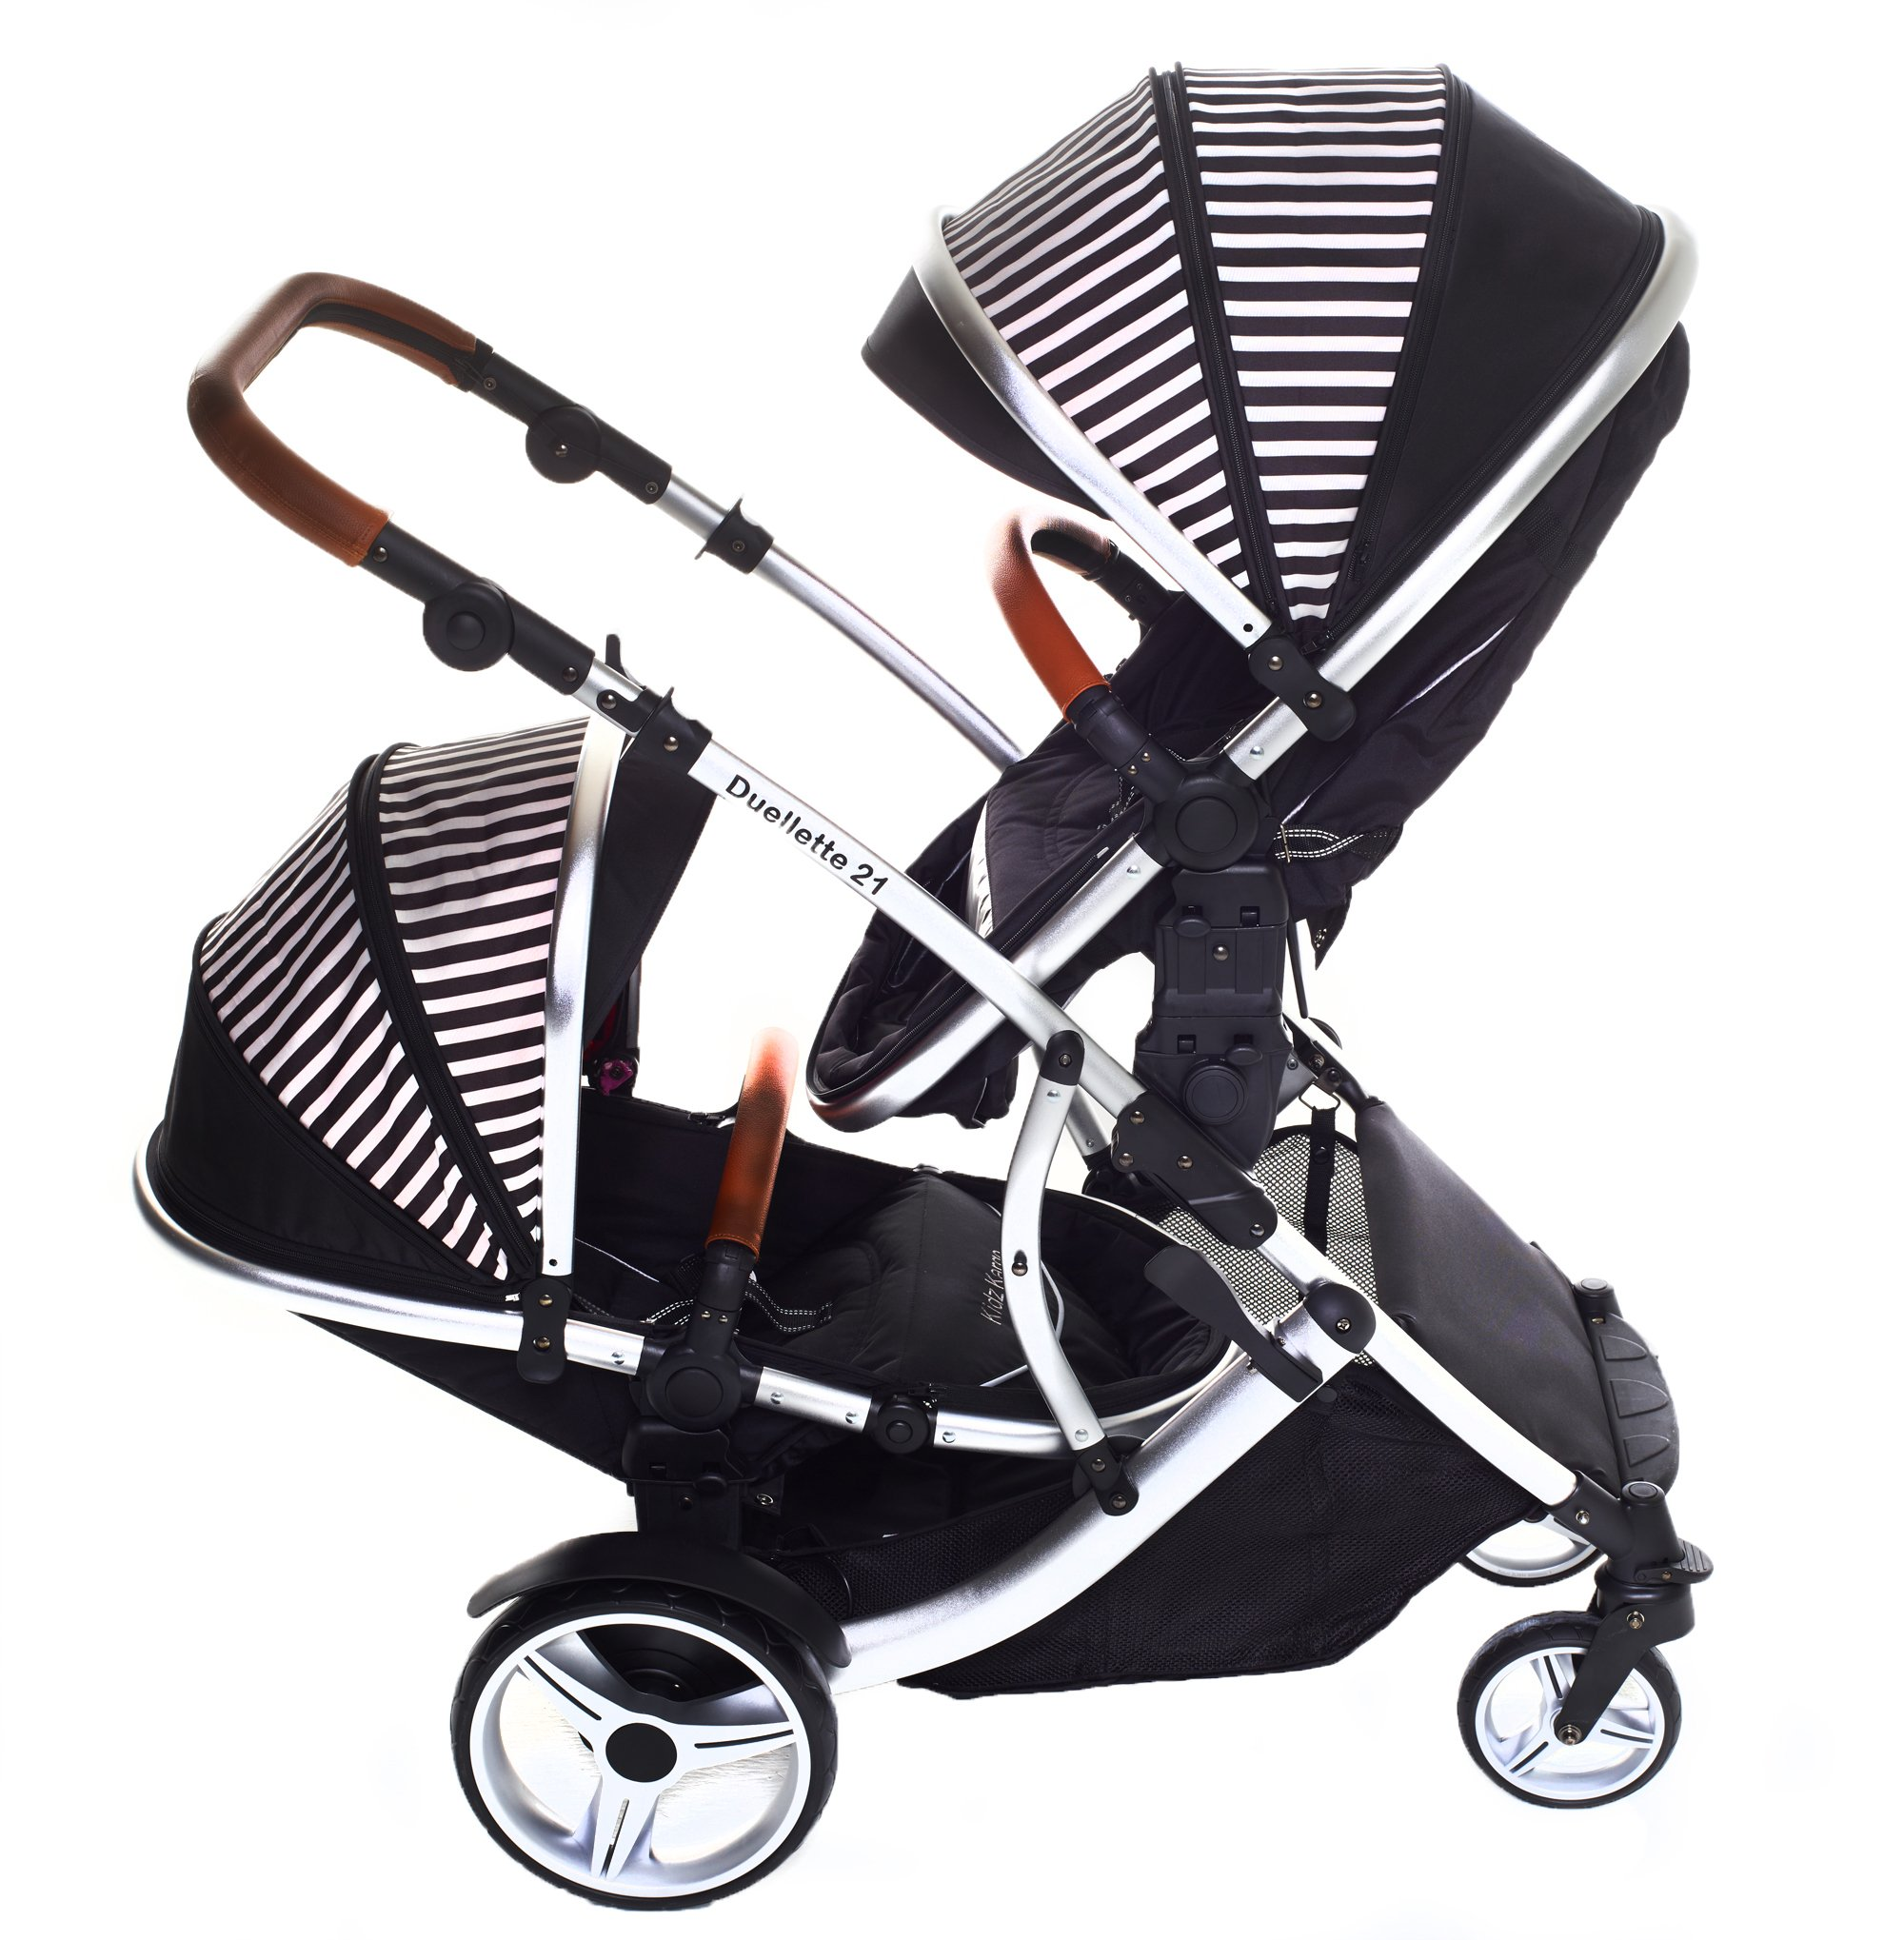 Kids Kargo Duellette 21 Bs Twin Double Pushchair Stroller Buggy with Tan Handle Pack (Oxford Stripe) Kids Kargo Fully safety tested Various seat positions. Both seats can face mum (ideal for twins) Suitability Newborn Twins (if used with car seats) or Newborn/toddler. Accommodates 1 or 2 car seats 3